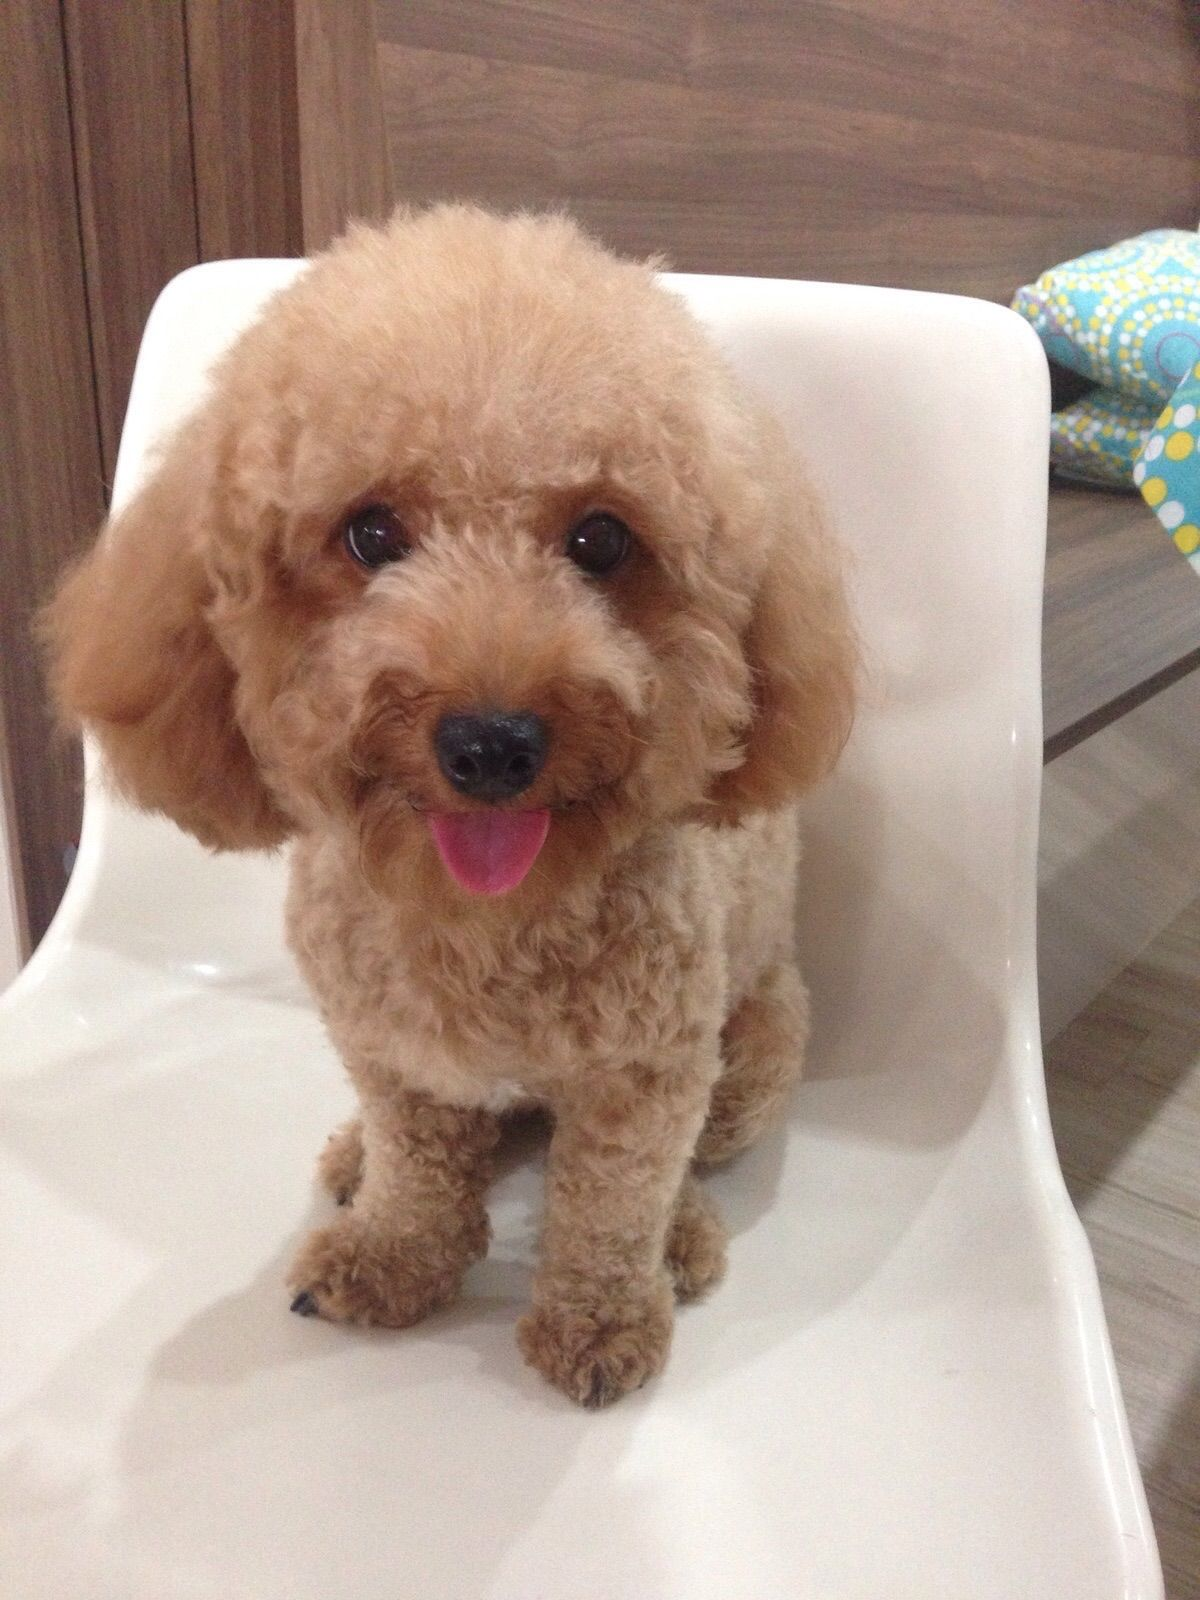 Butter Toy Poodle Pawshake Poodles Pinterest Poodle